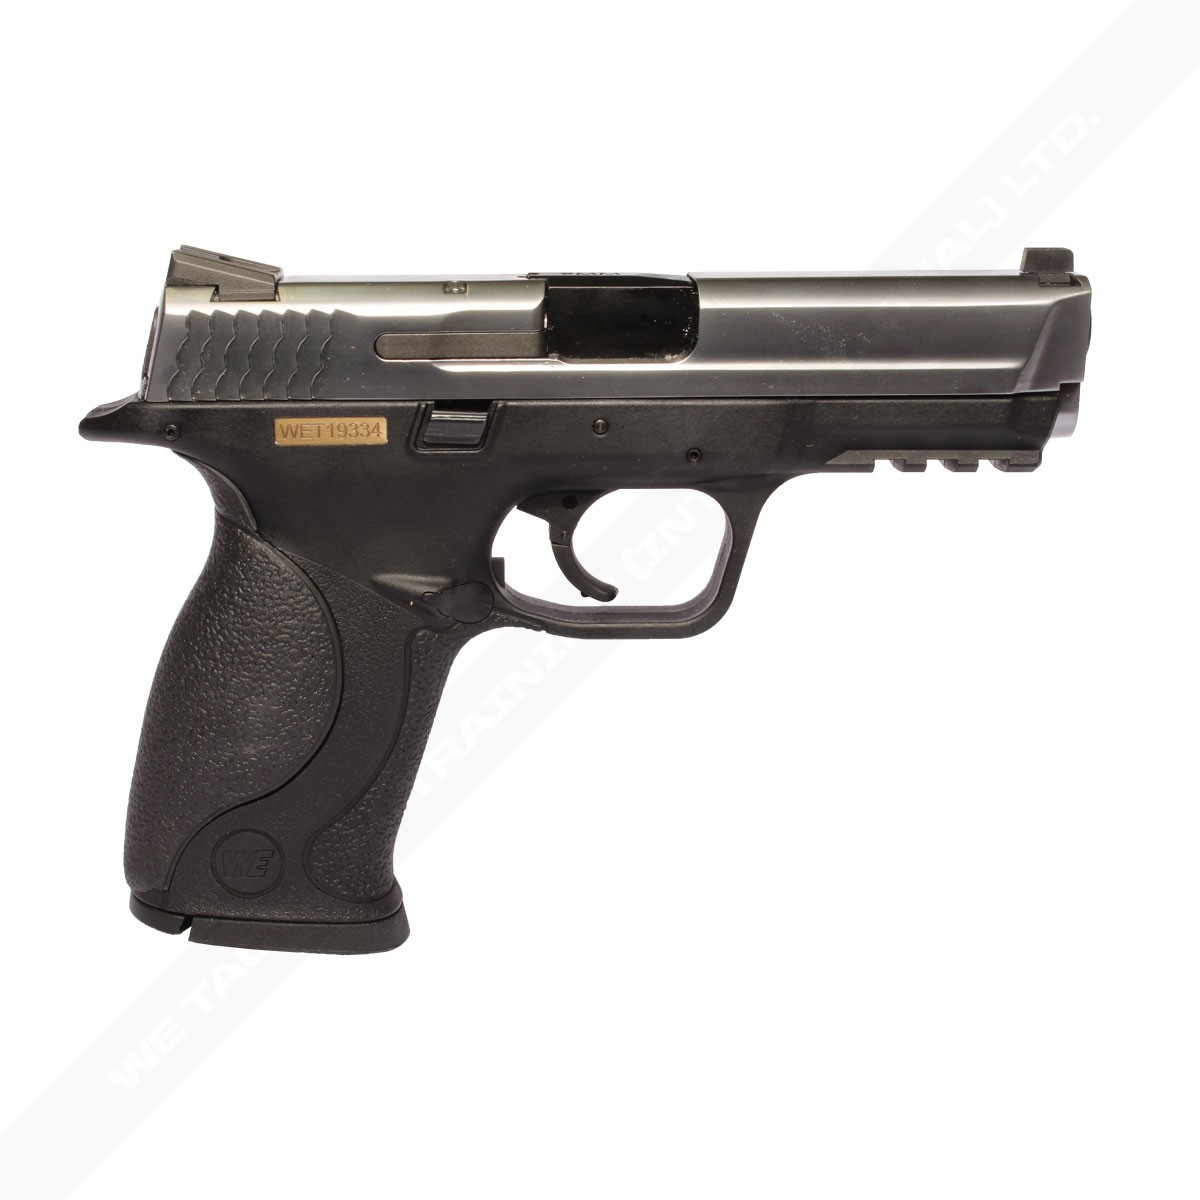 WE Big Bird / M&P 9 Gas Blowback Pistol - Silver